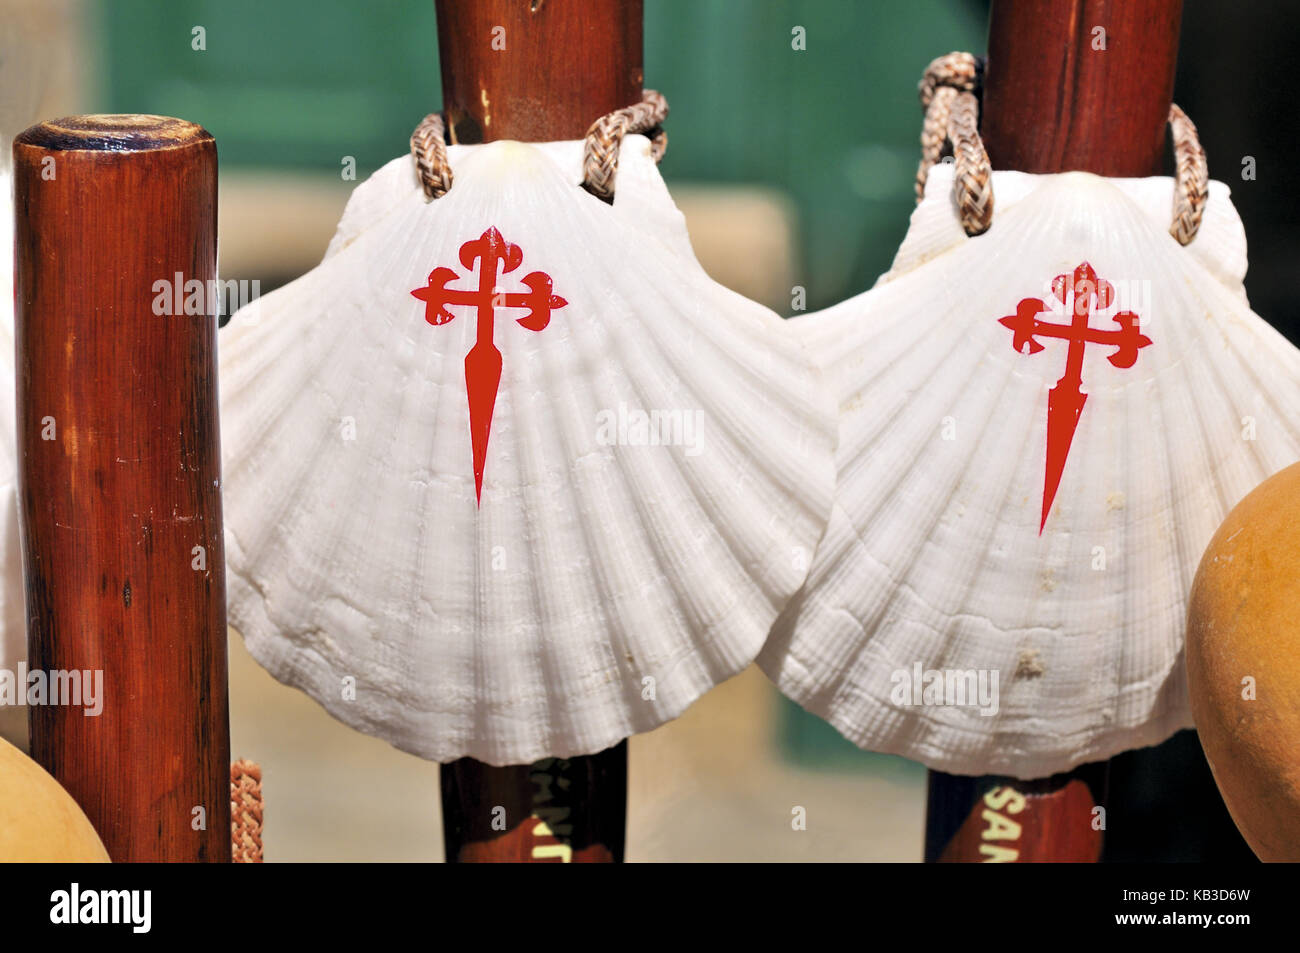 Spain, Way of St. James, pilgrim's implements and icons, - Stock Image